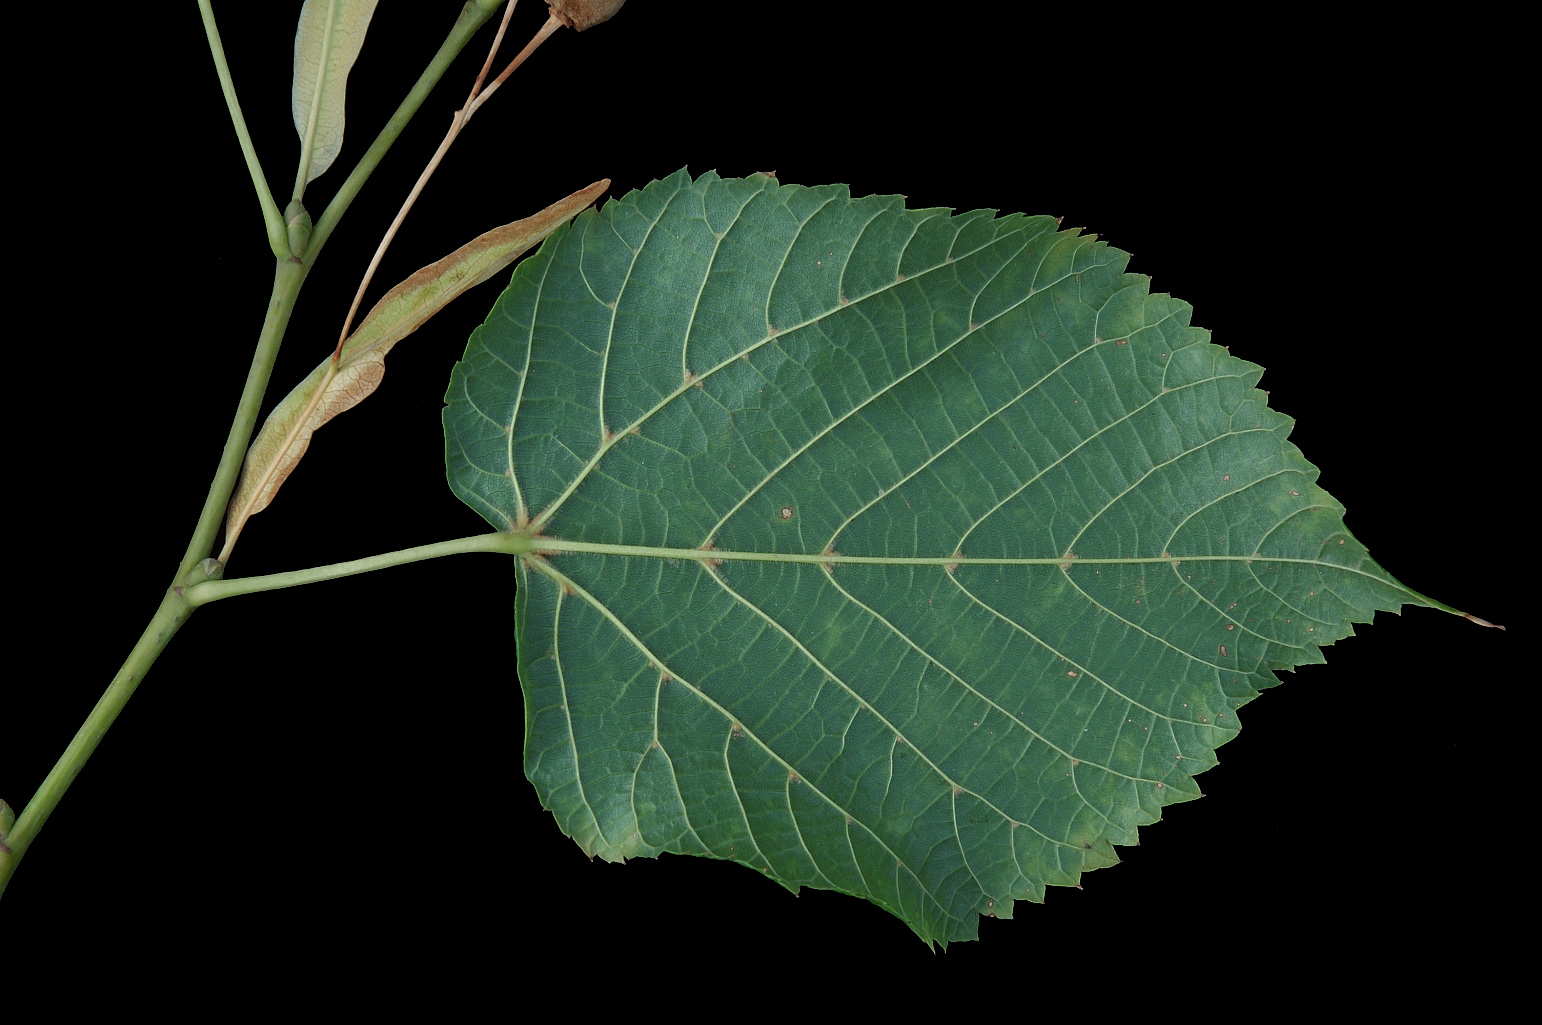 Abaxial side of a leaf with tufts of reddish hairs in the vein axils